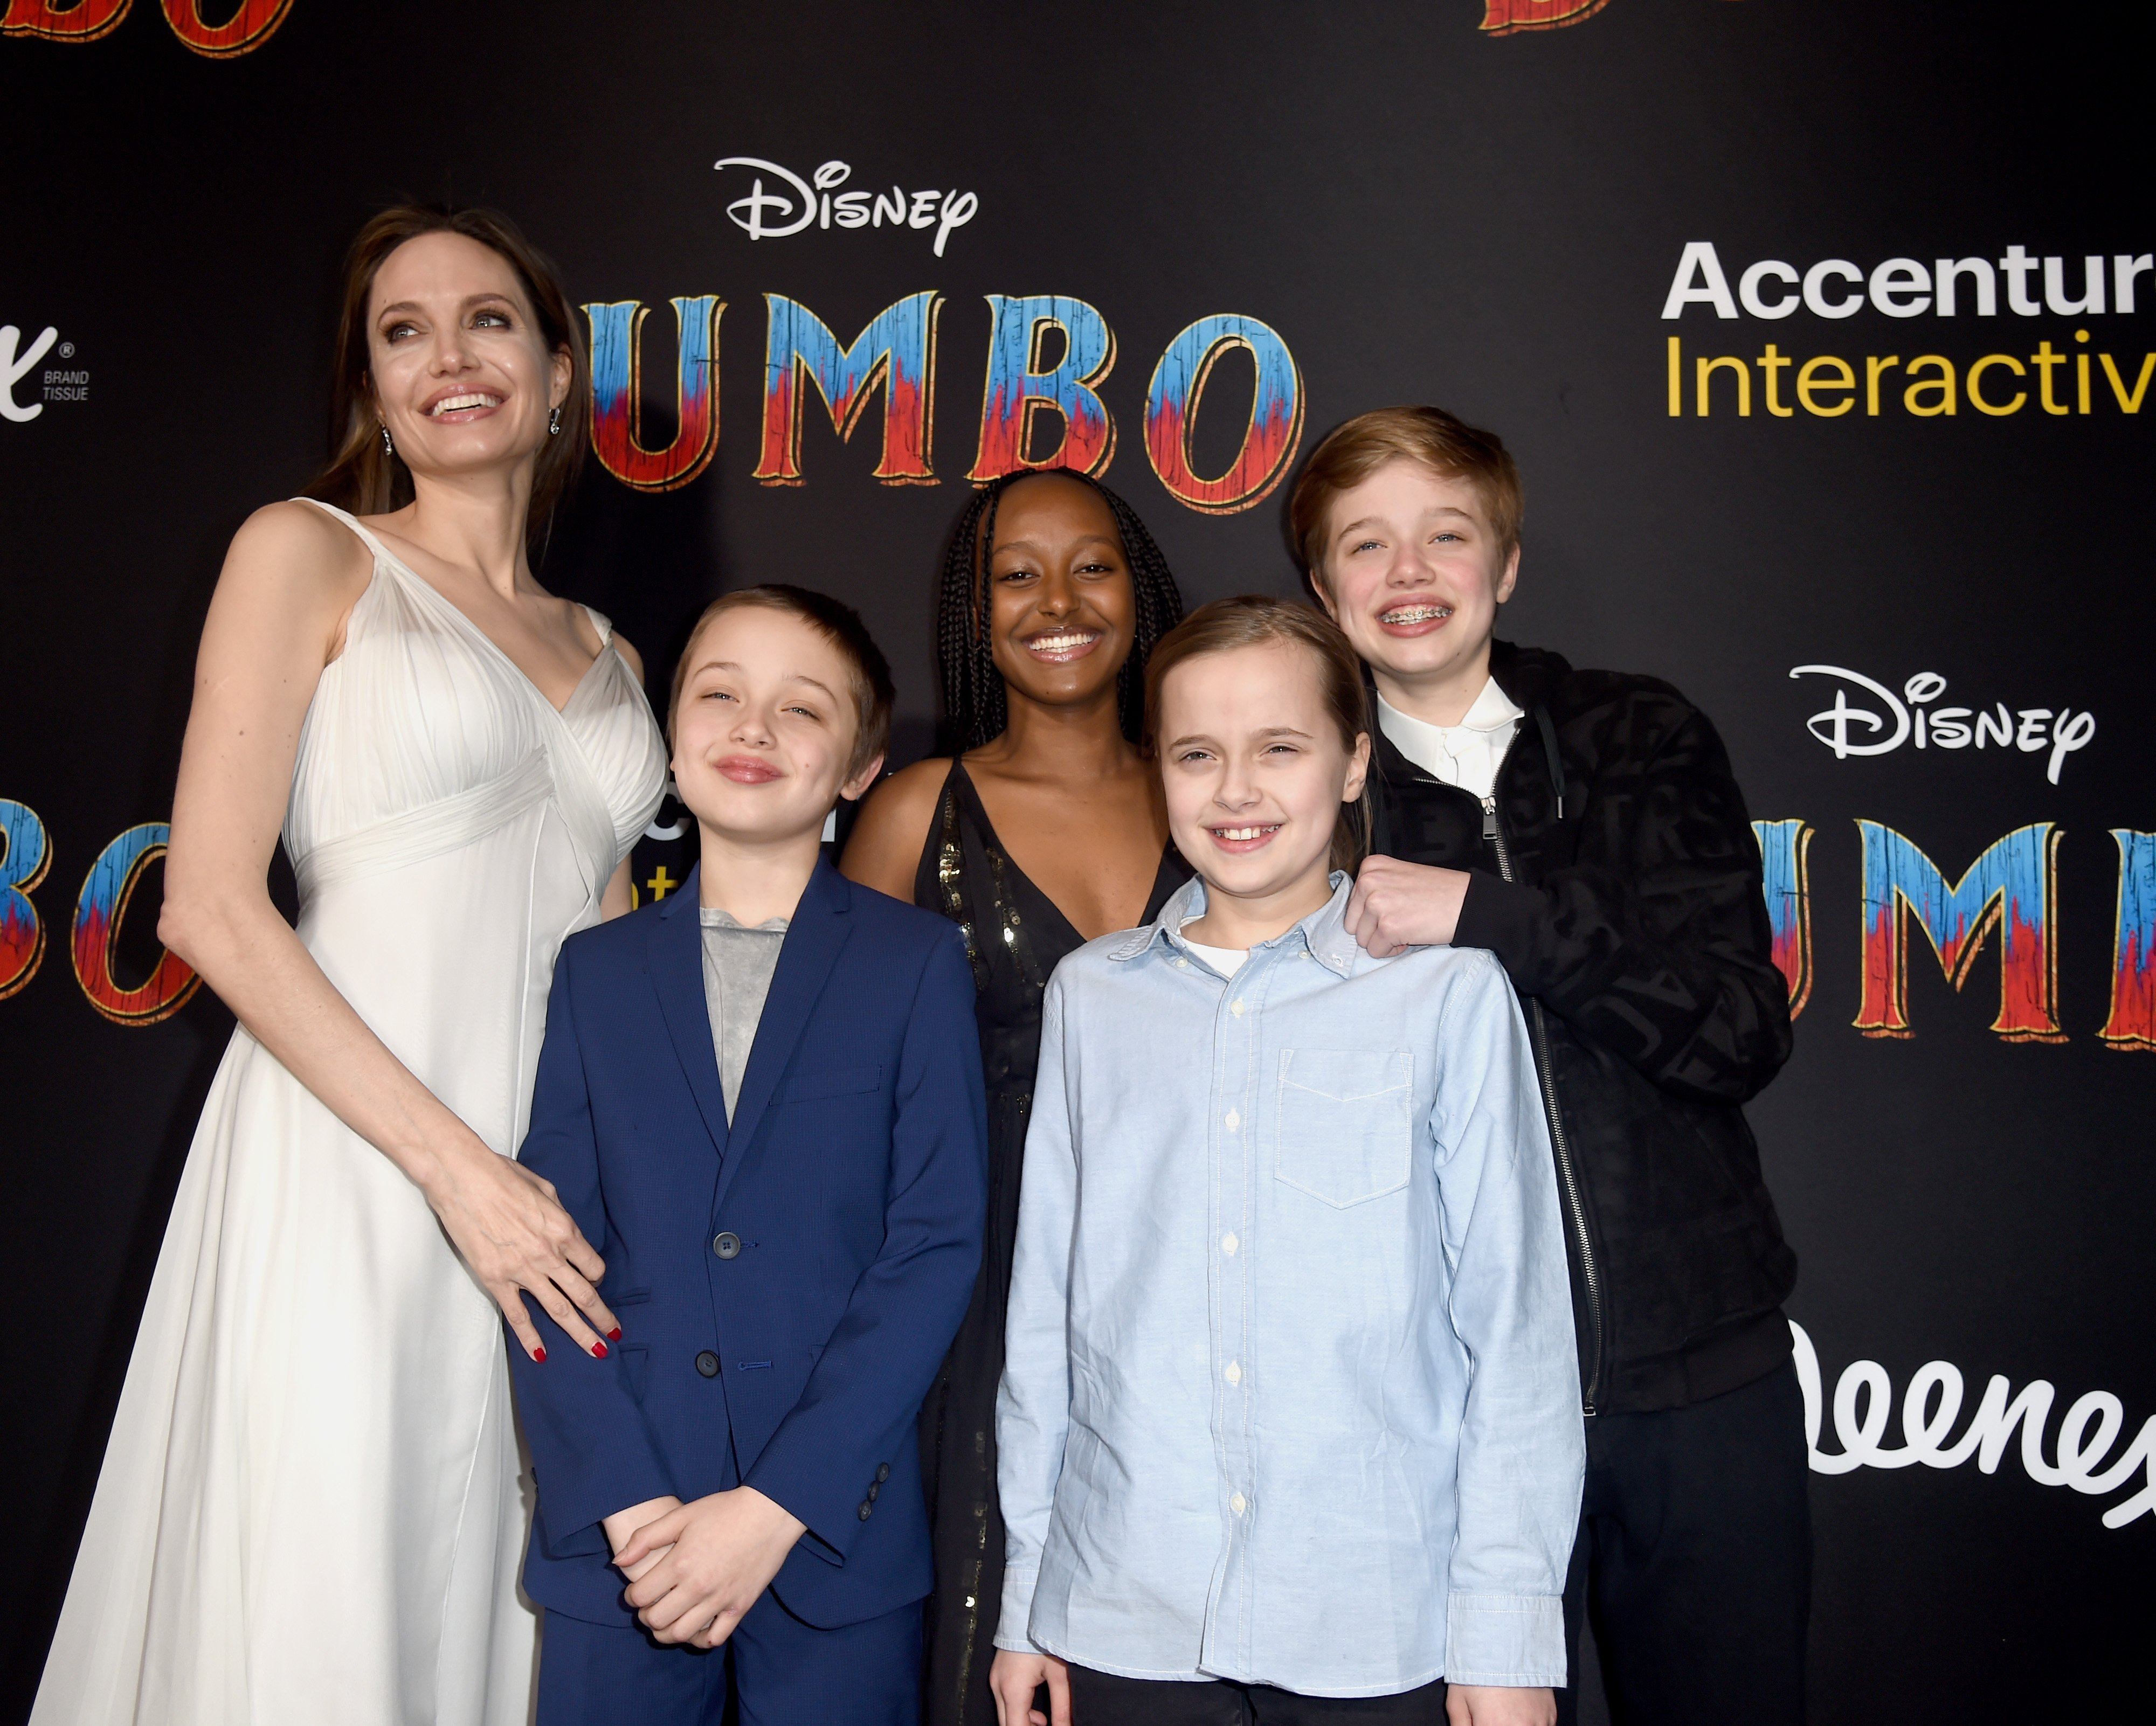 """Angelina Jolie and her children attend the premiere of """"Dumbo"""" in Los Angeles, California on March 11, 2019 